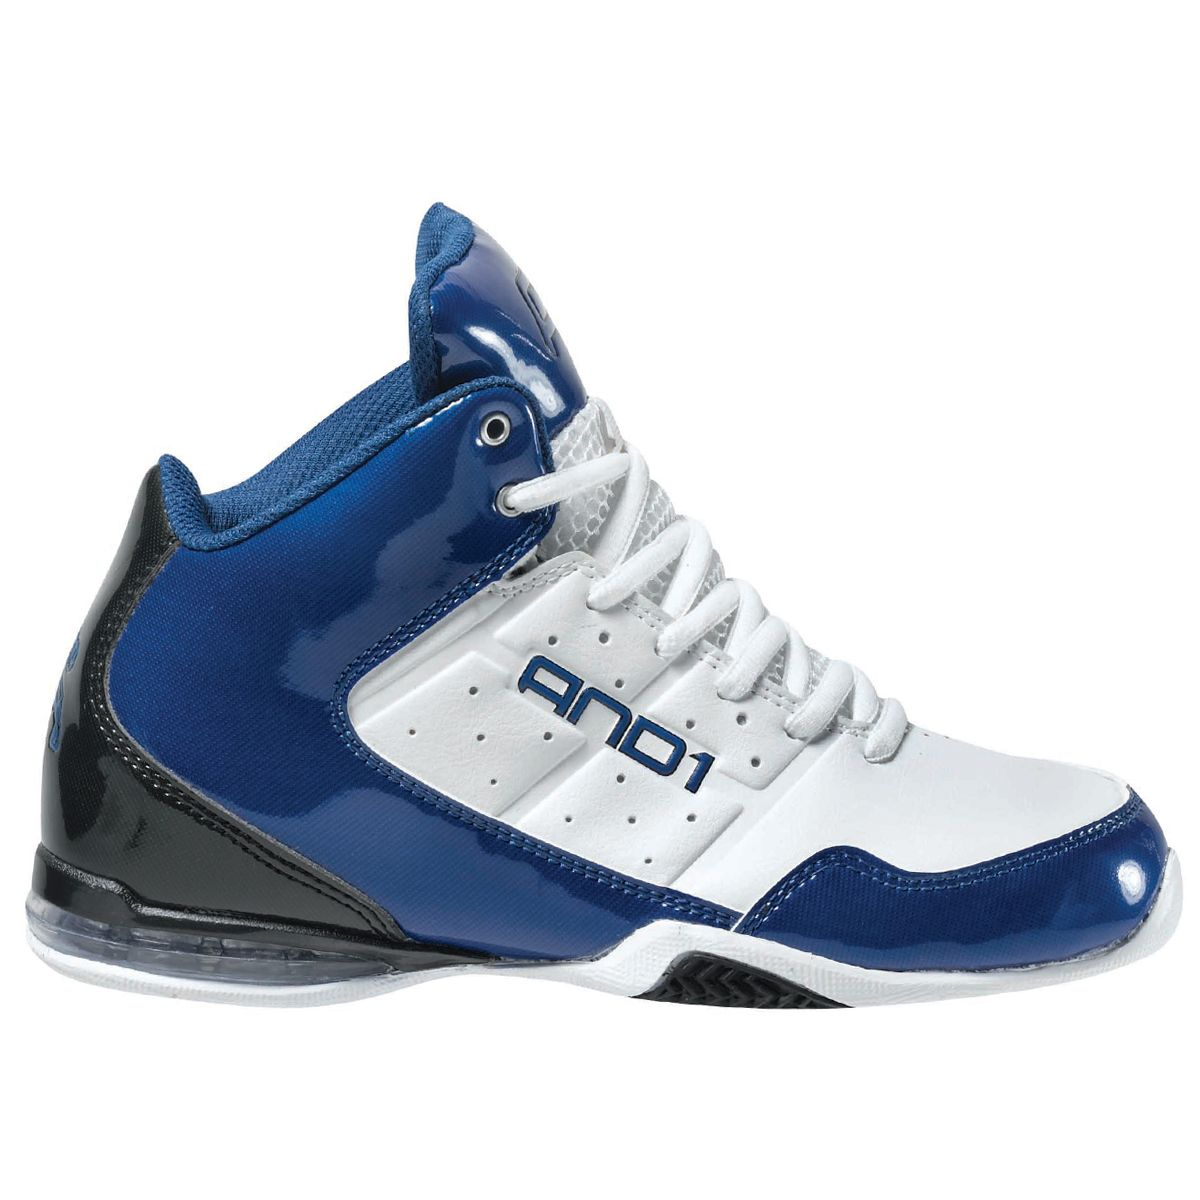 official photos 3a500 78995 AND1 Master Mid Basketball Shoe